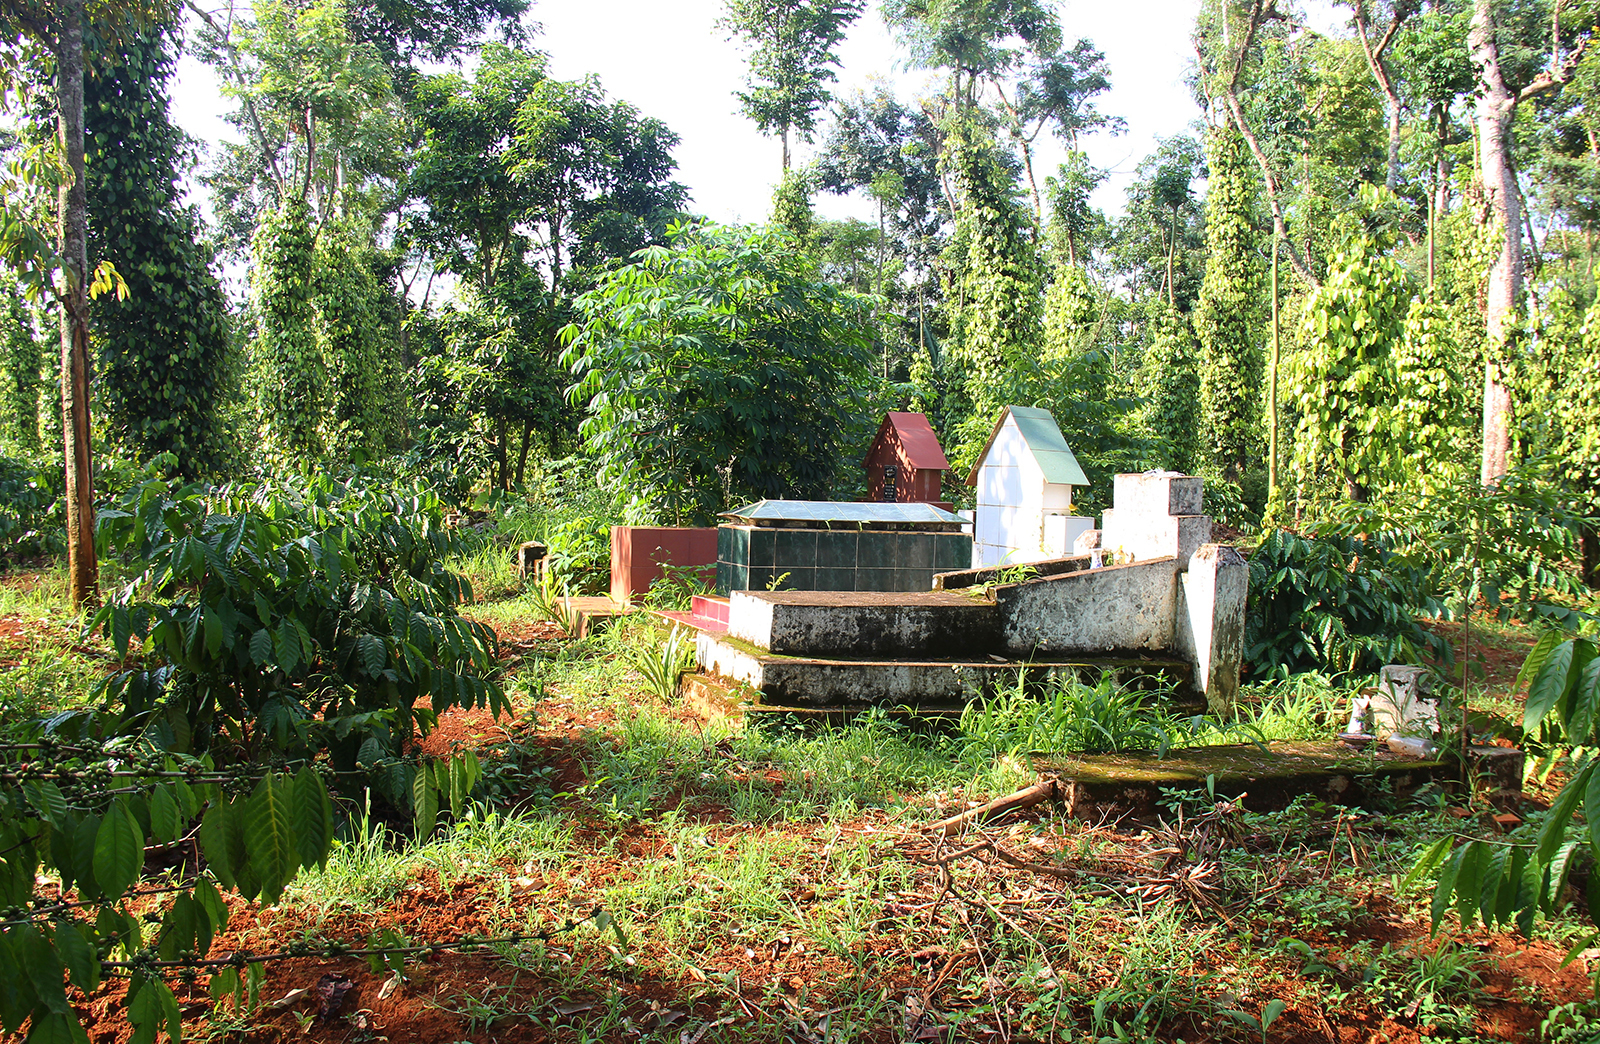 Y Bel Eban's coffee farm inherited from his grandparents is also a family cemetery.